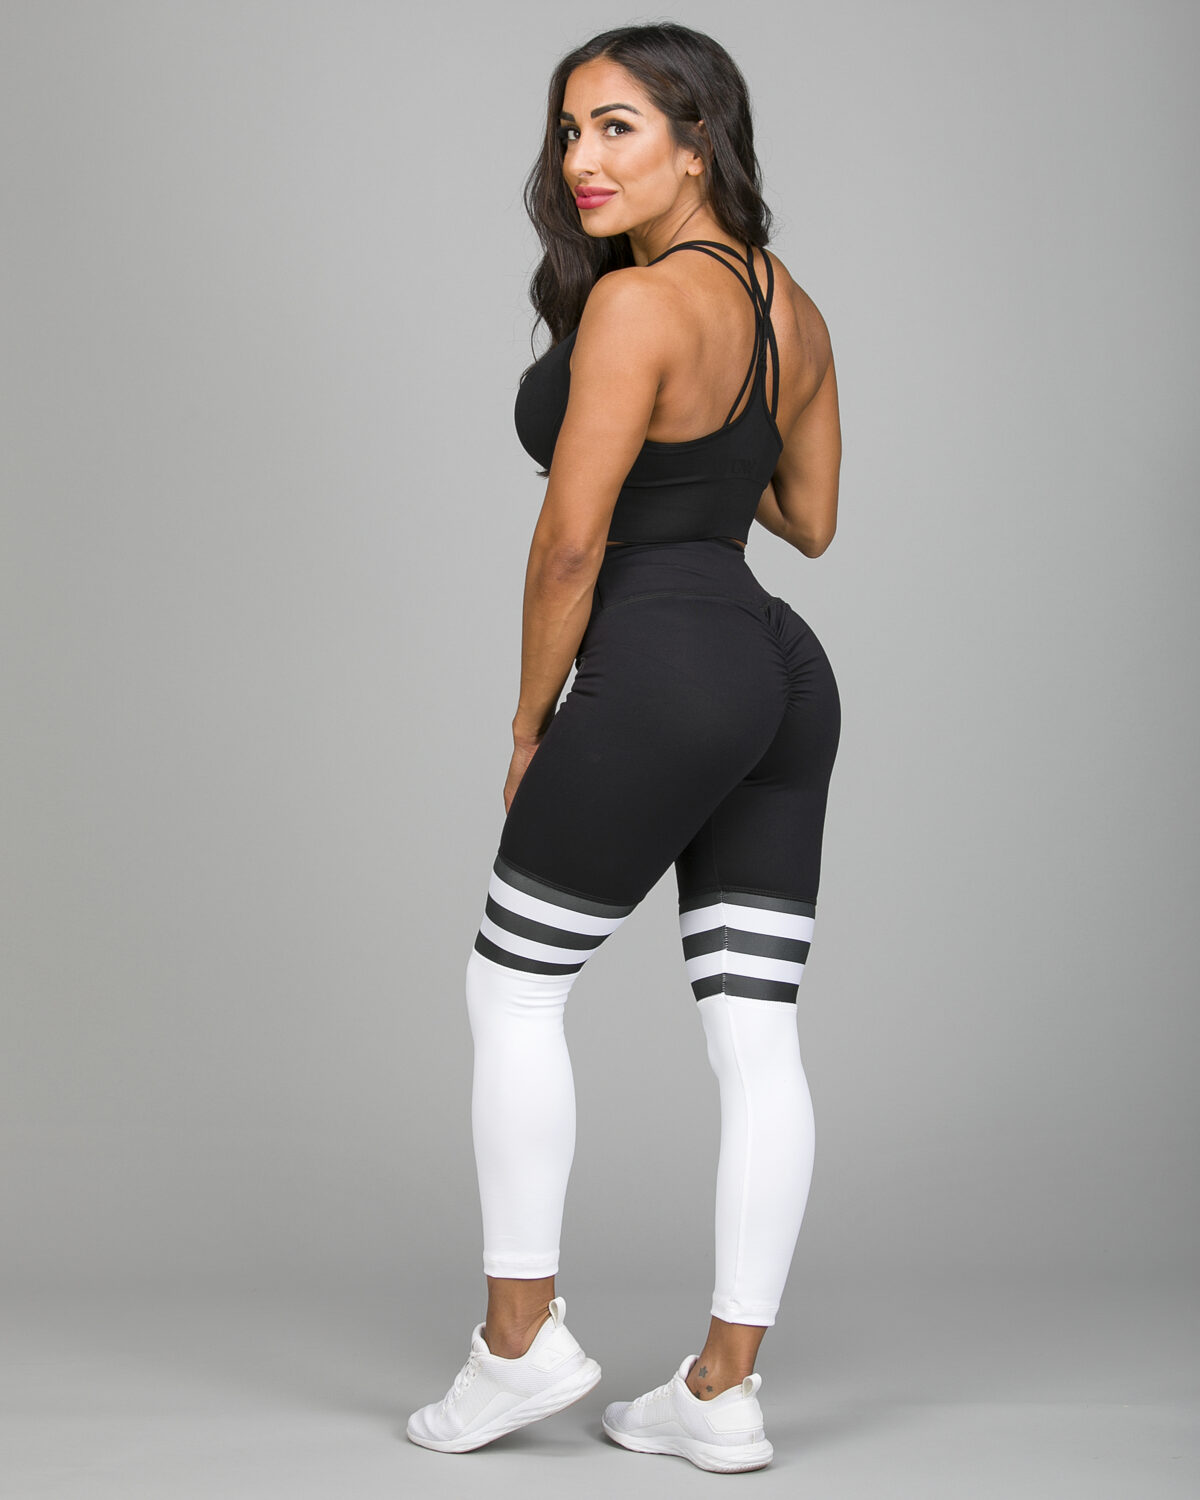 ABS2B-Fitness-High-Knee-Stripes-Black.White7_-1200×1500